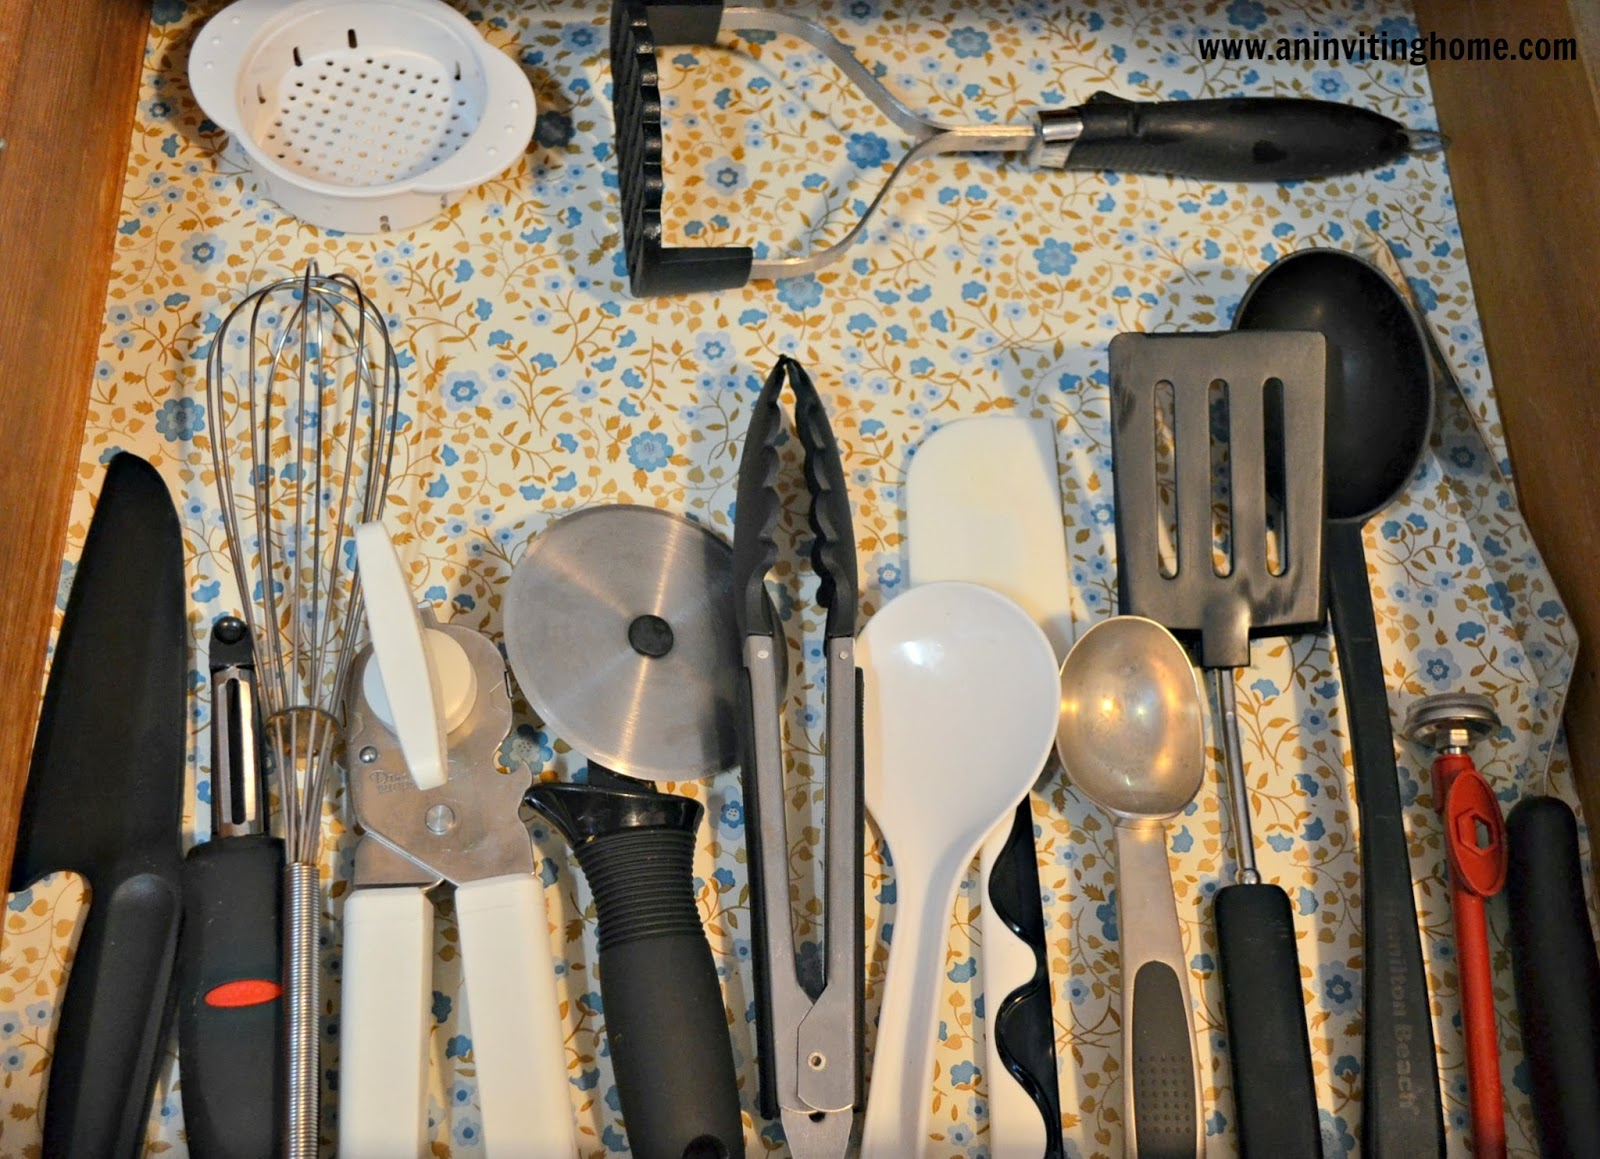 is having multiples of kitchen utensils really necessary